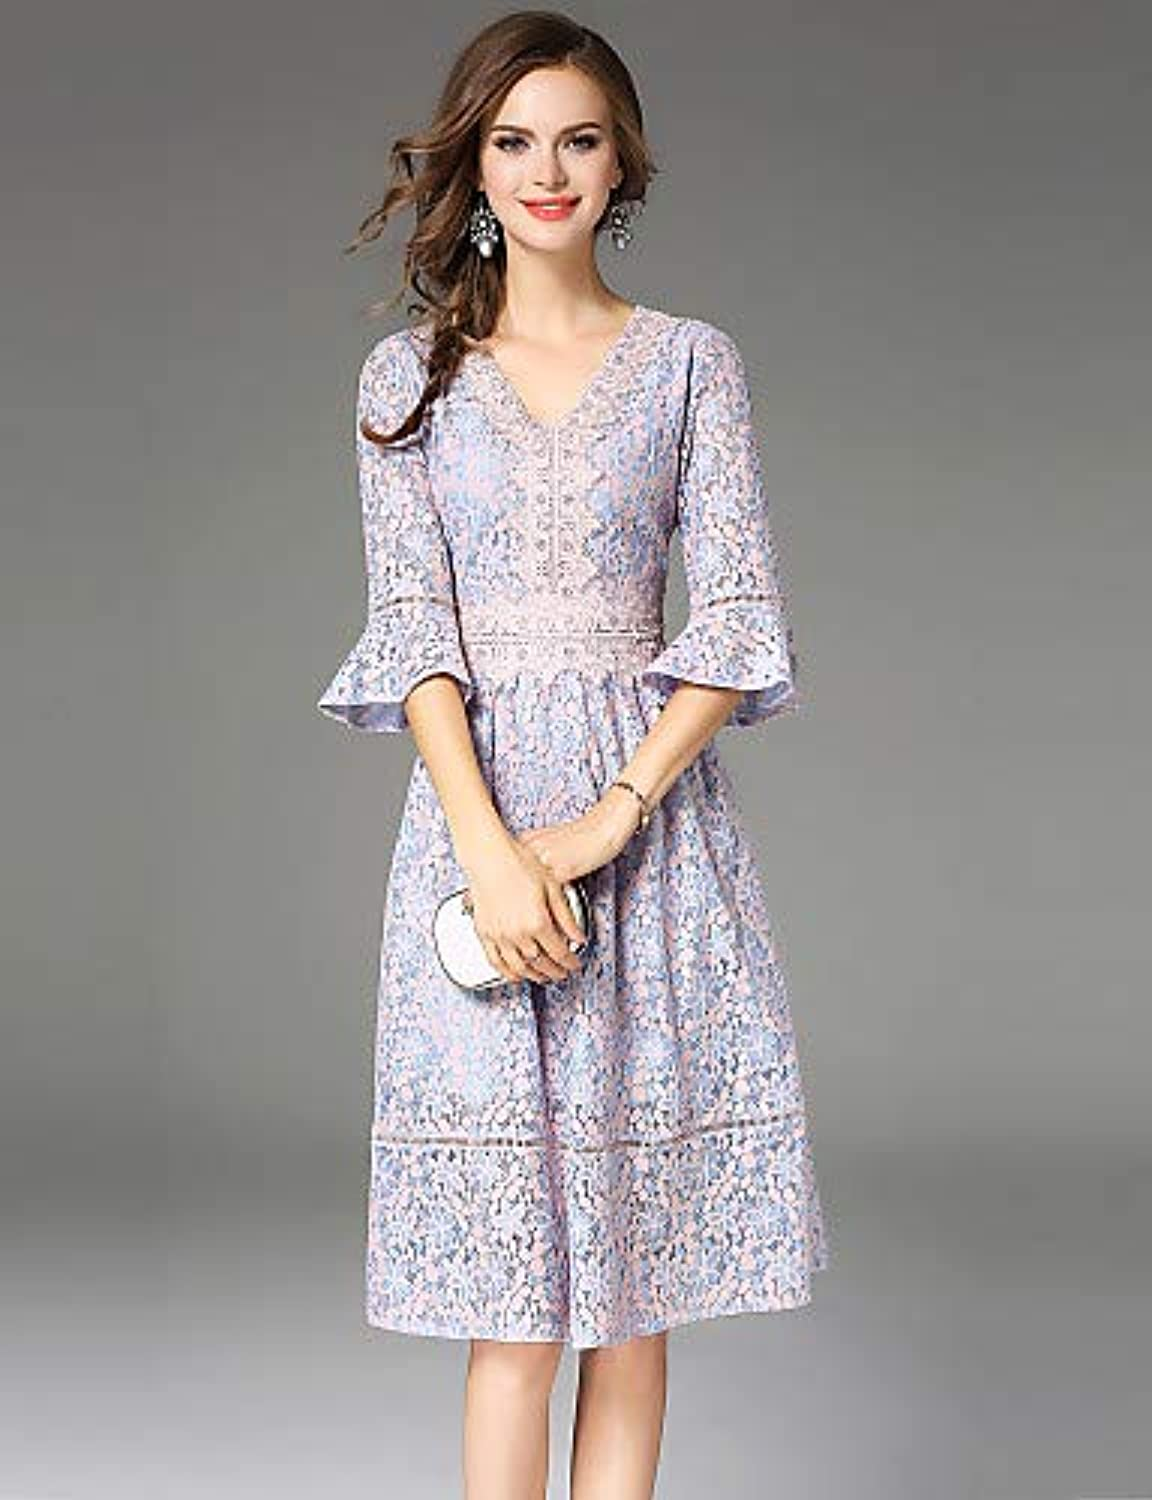 Women's Vintage Sophisticated Flare Sleeve A Line Dress  color Block Lace